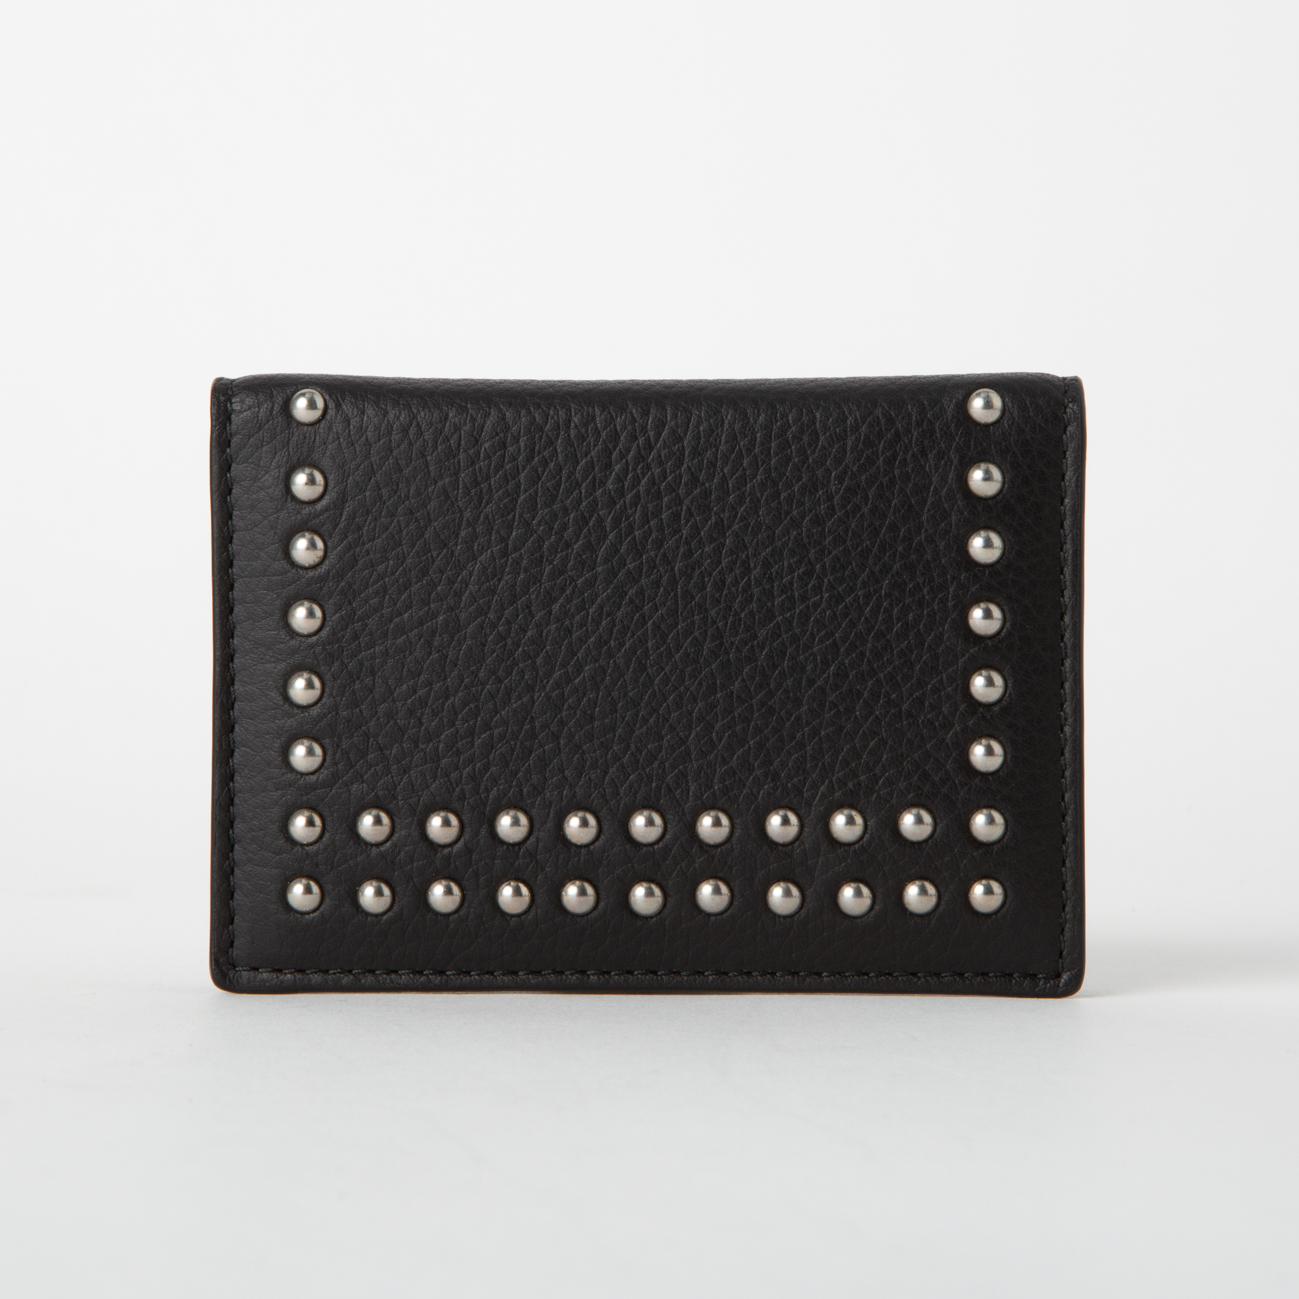 VISIT CARD HOLDER WITH STUDS 詳細画像 ブラック 1